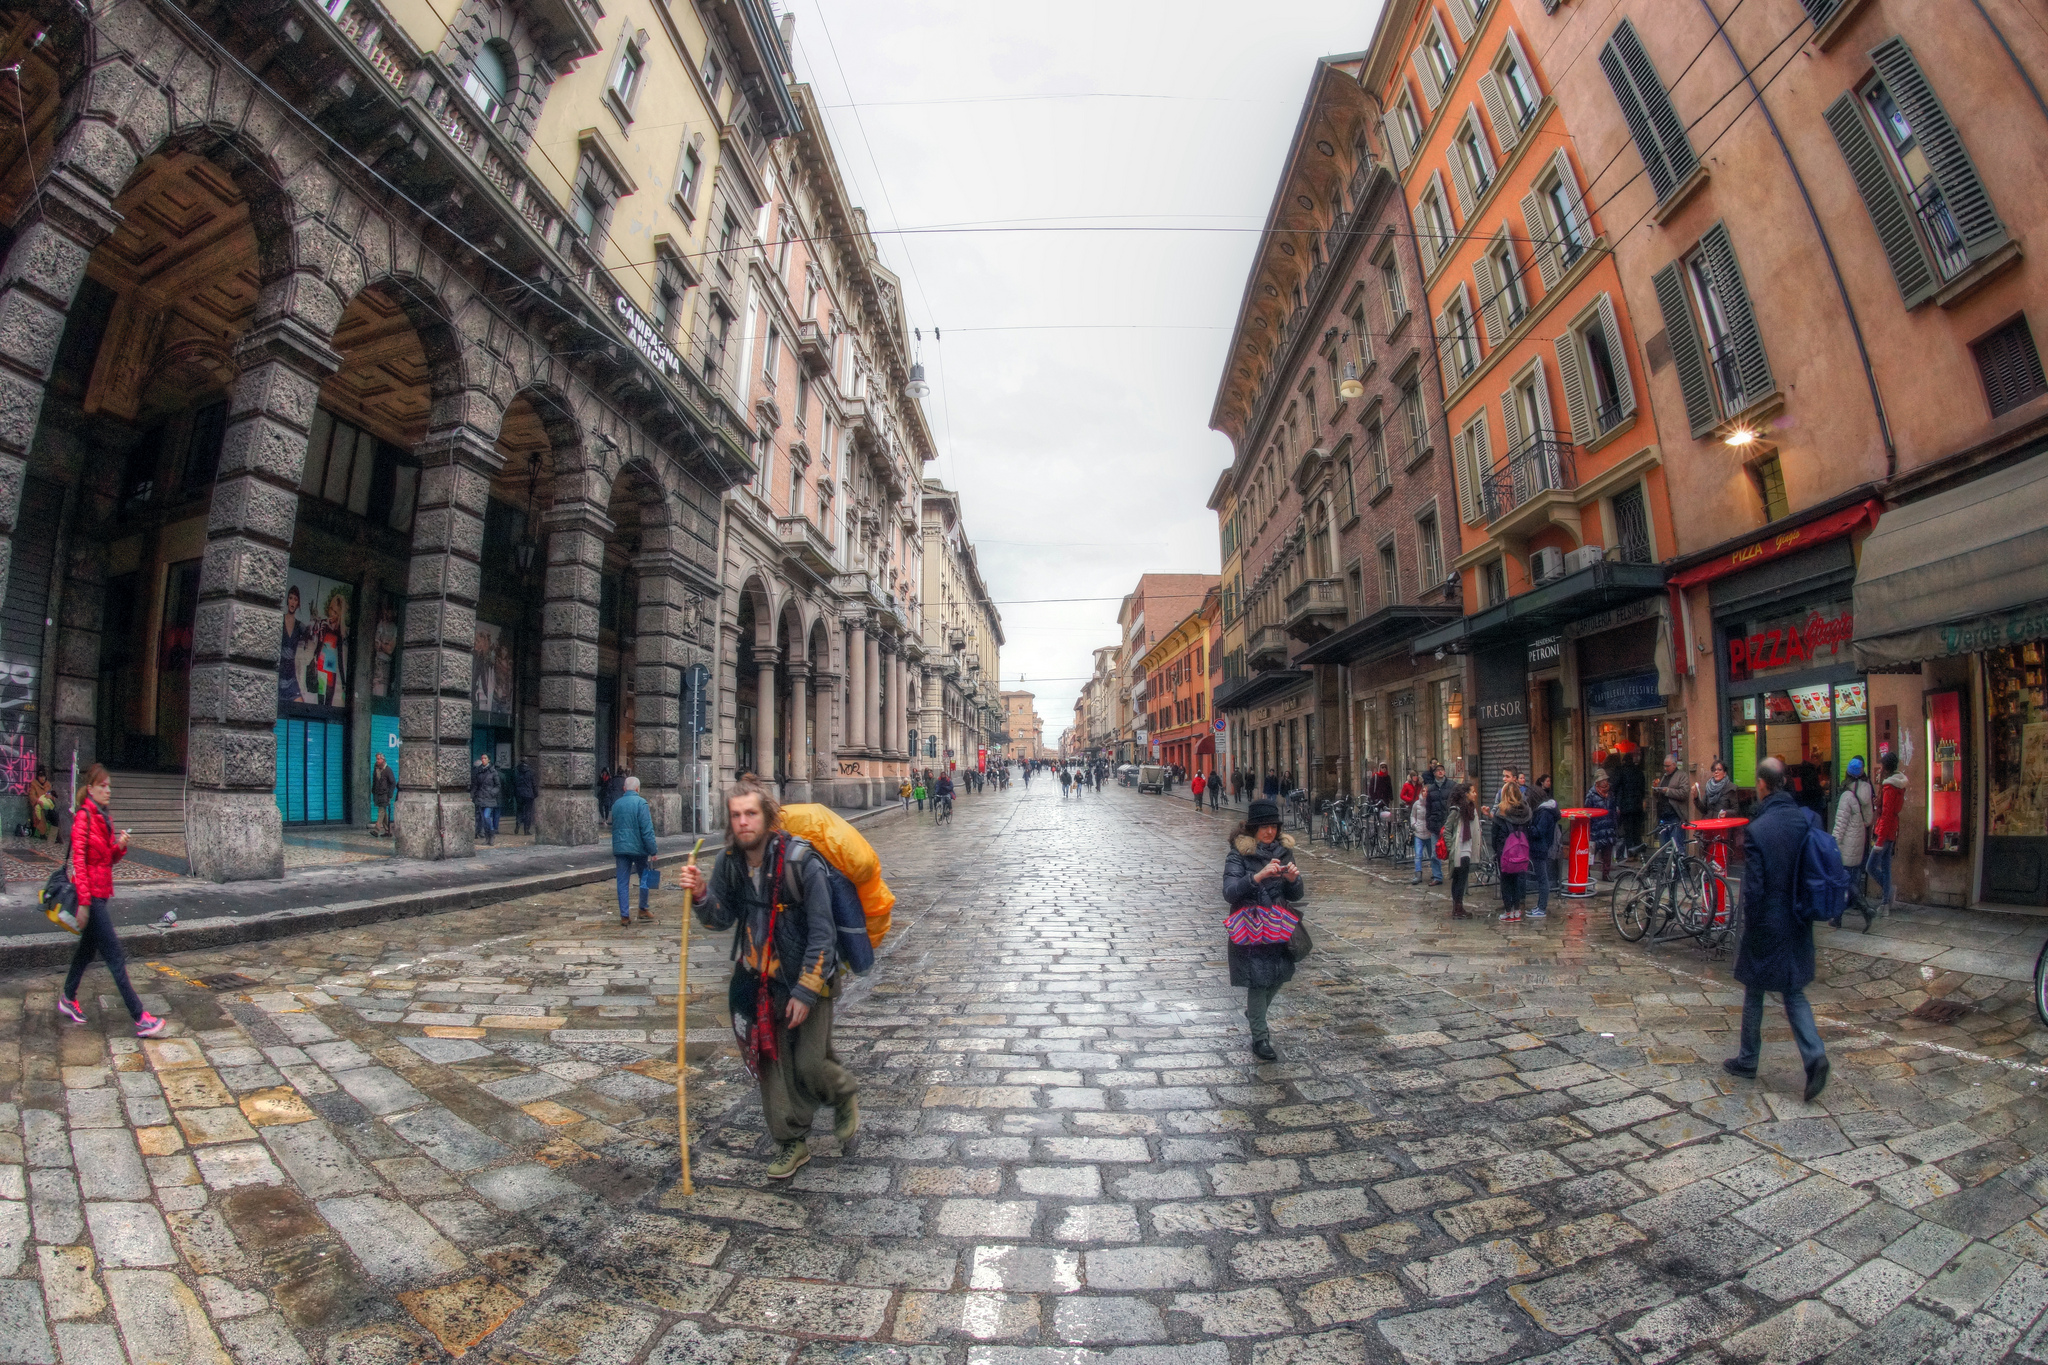 Bologna - City in Italy - Thousand Wonders